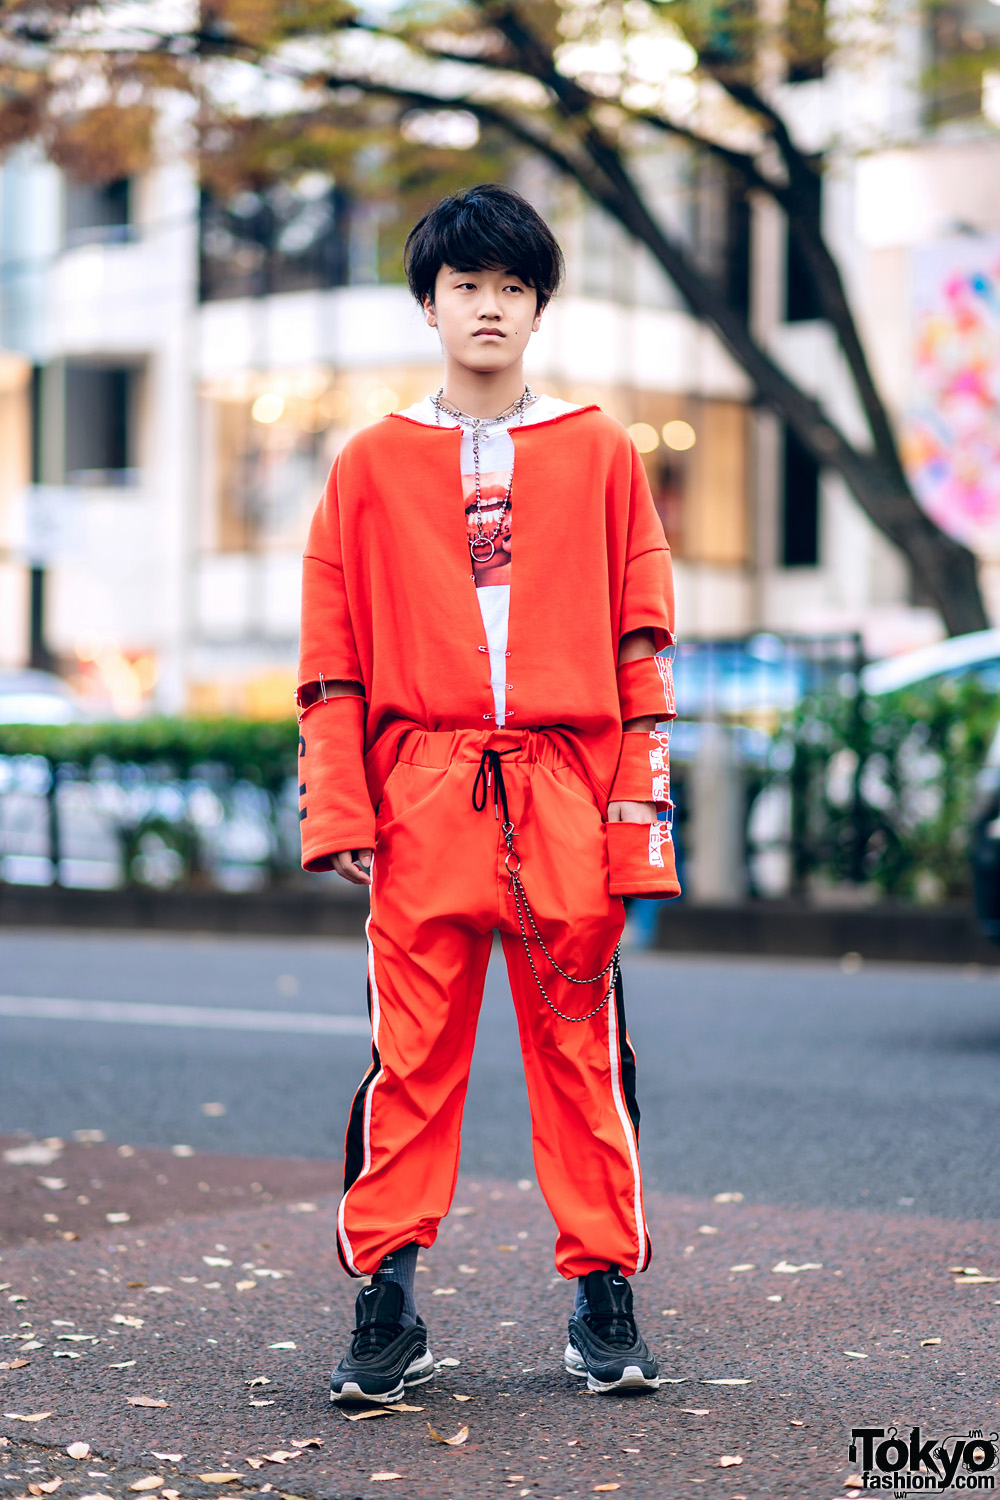 Harajuku Remake Street Style w/ Cutout Sleeve Jacket, Warp Track Pants, Mouth Shirt & Nike Air Max 97 Sneakers